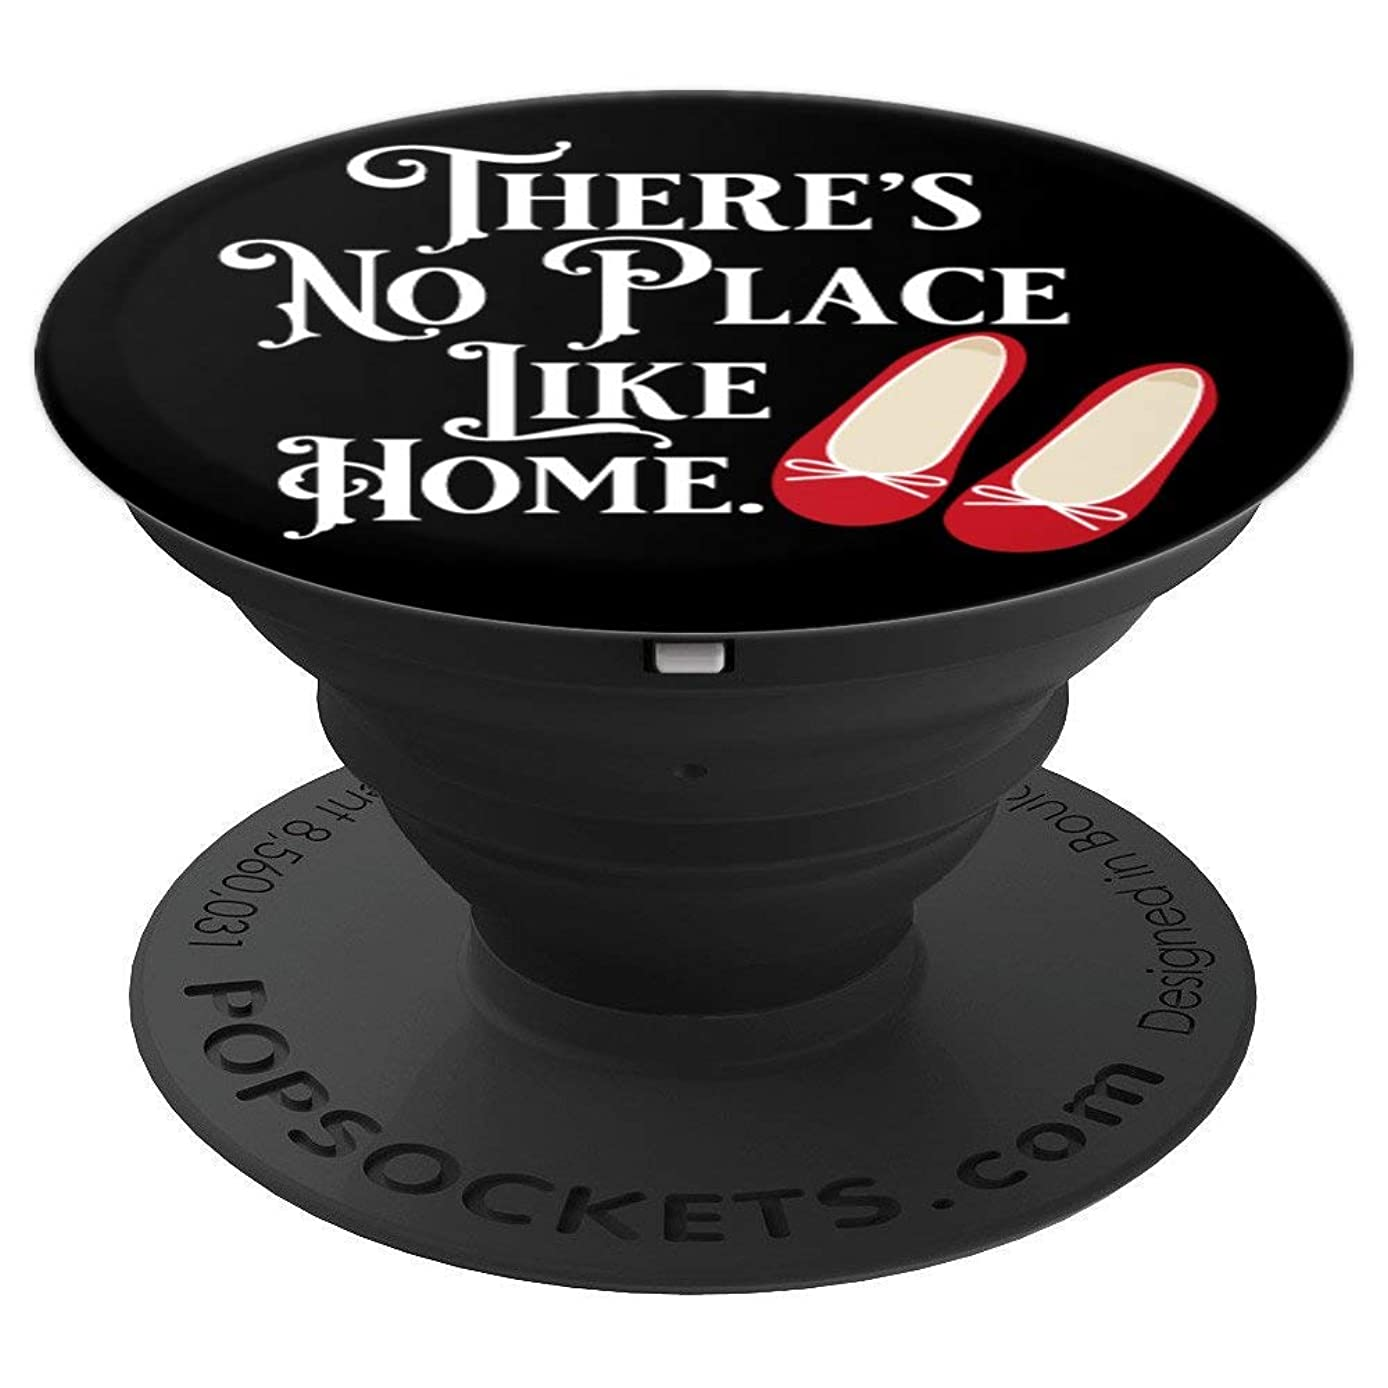 There's No Place Like Home - Wizard of Oz - PopSockets Grip and Stand for Phones and Tablets